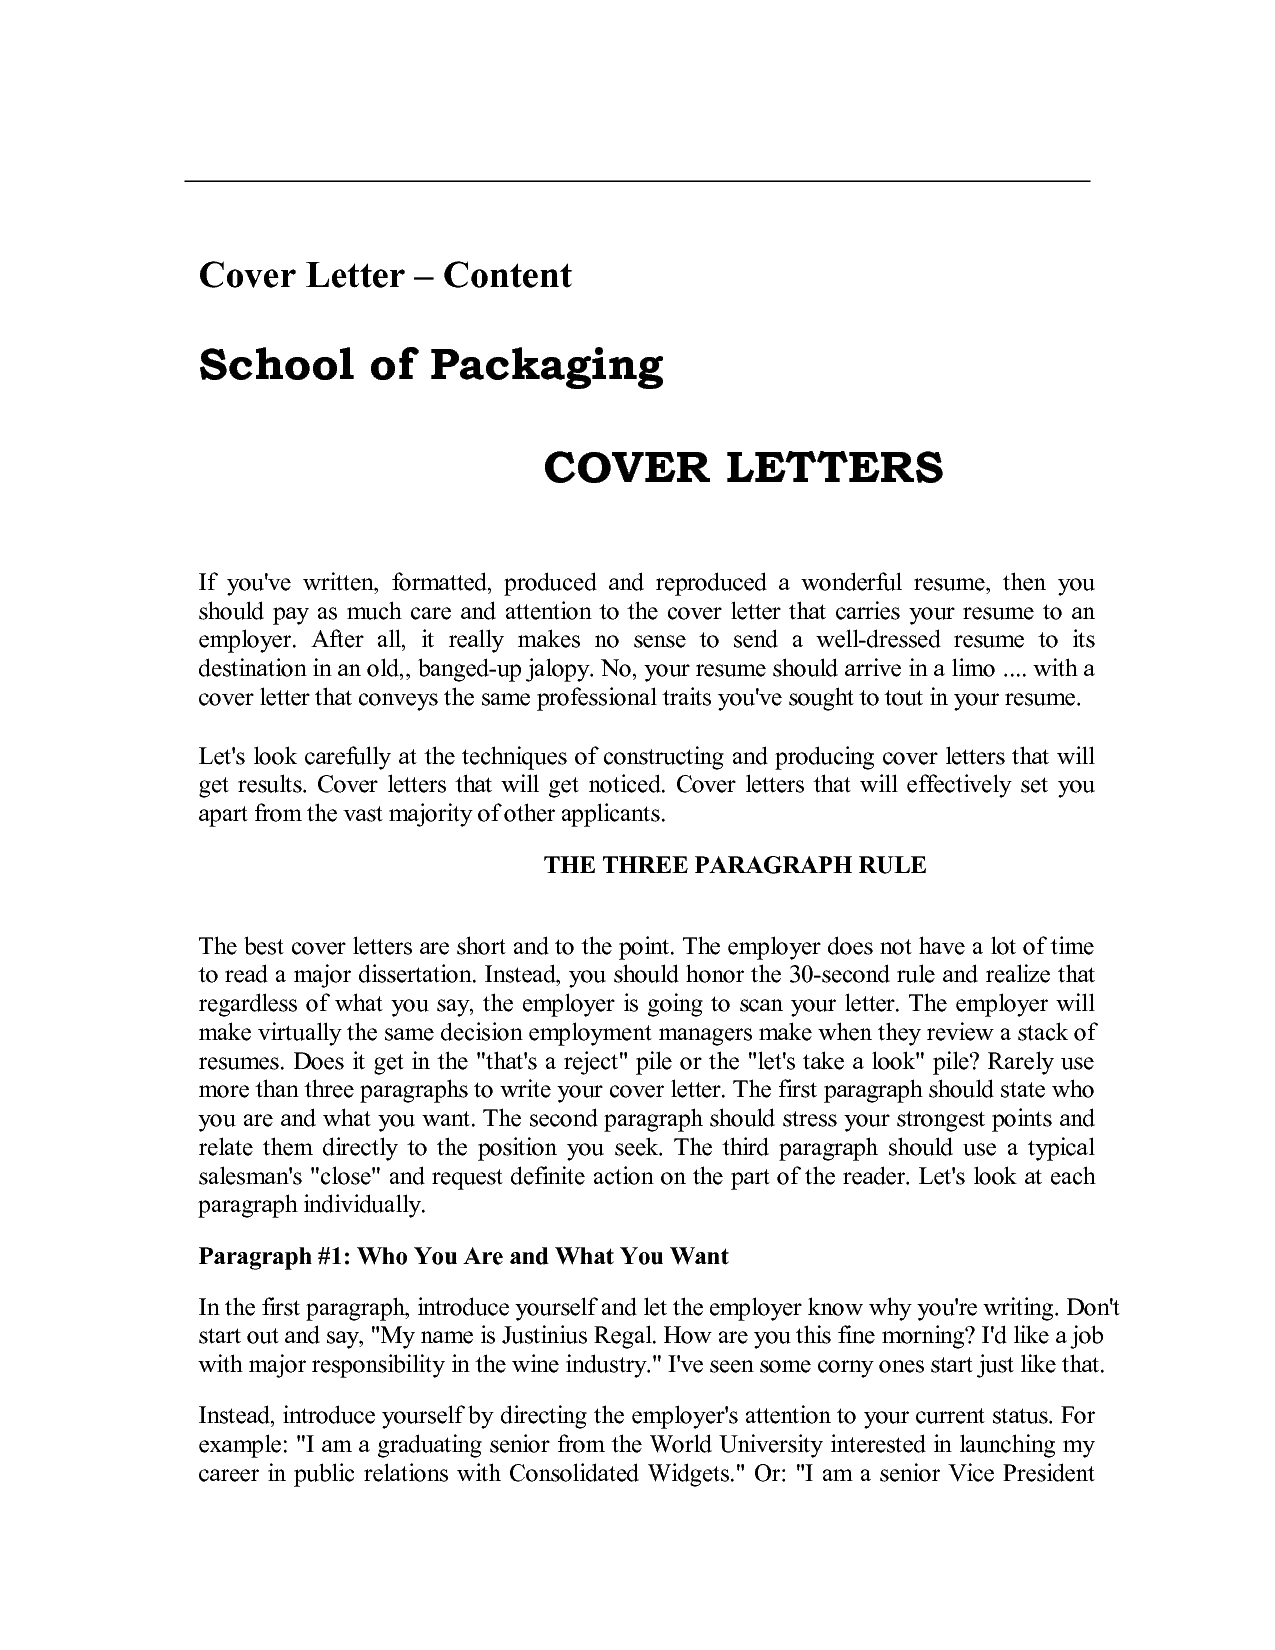 Cover Letters Pdf With ResumeCover Letter For Resume Cover Letter ...